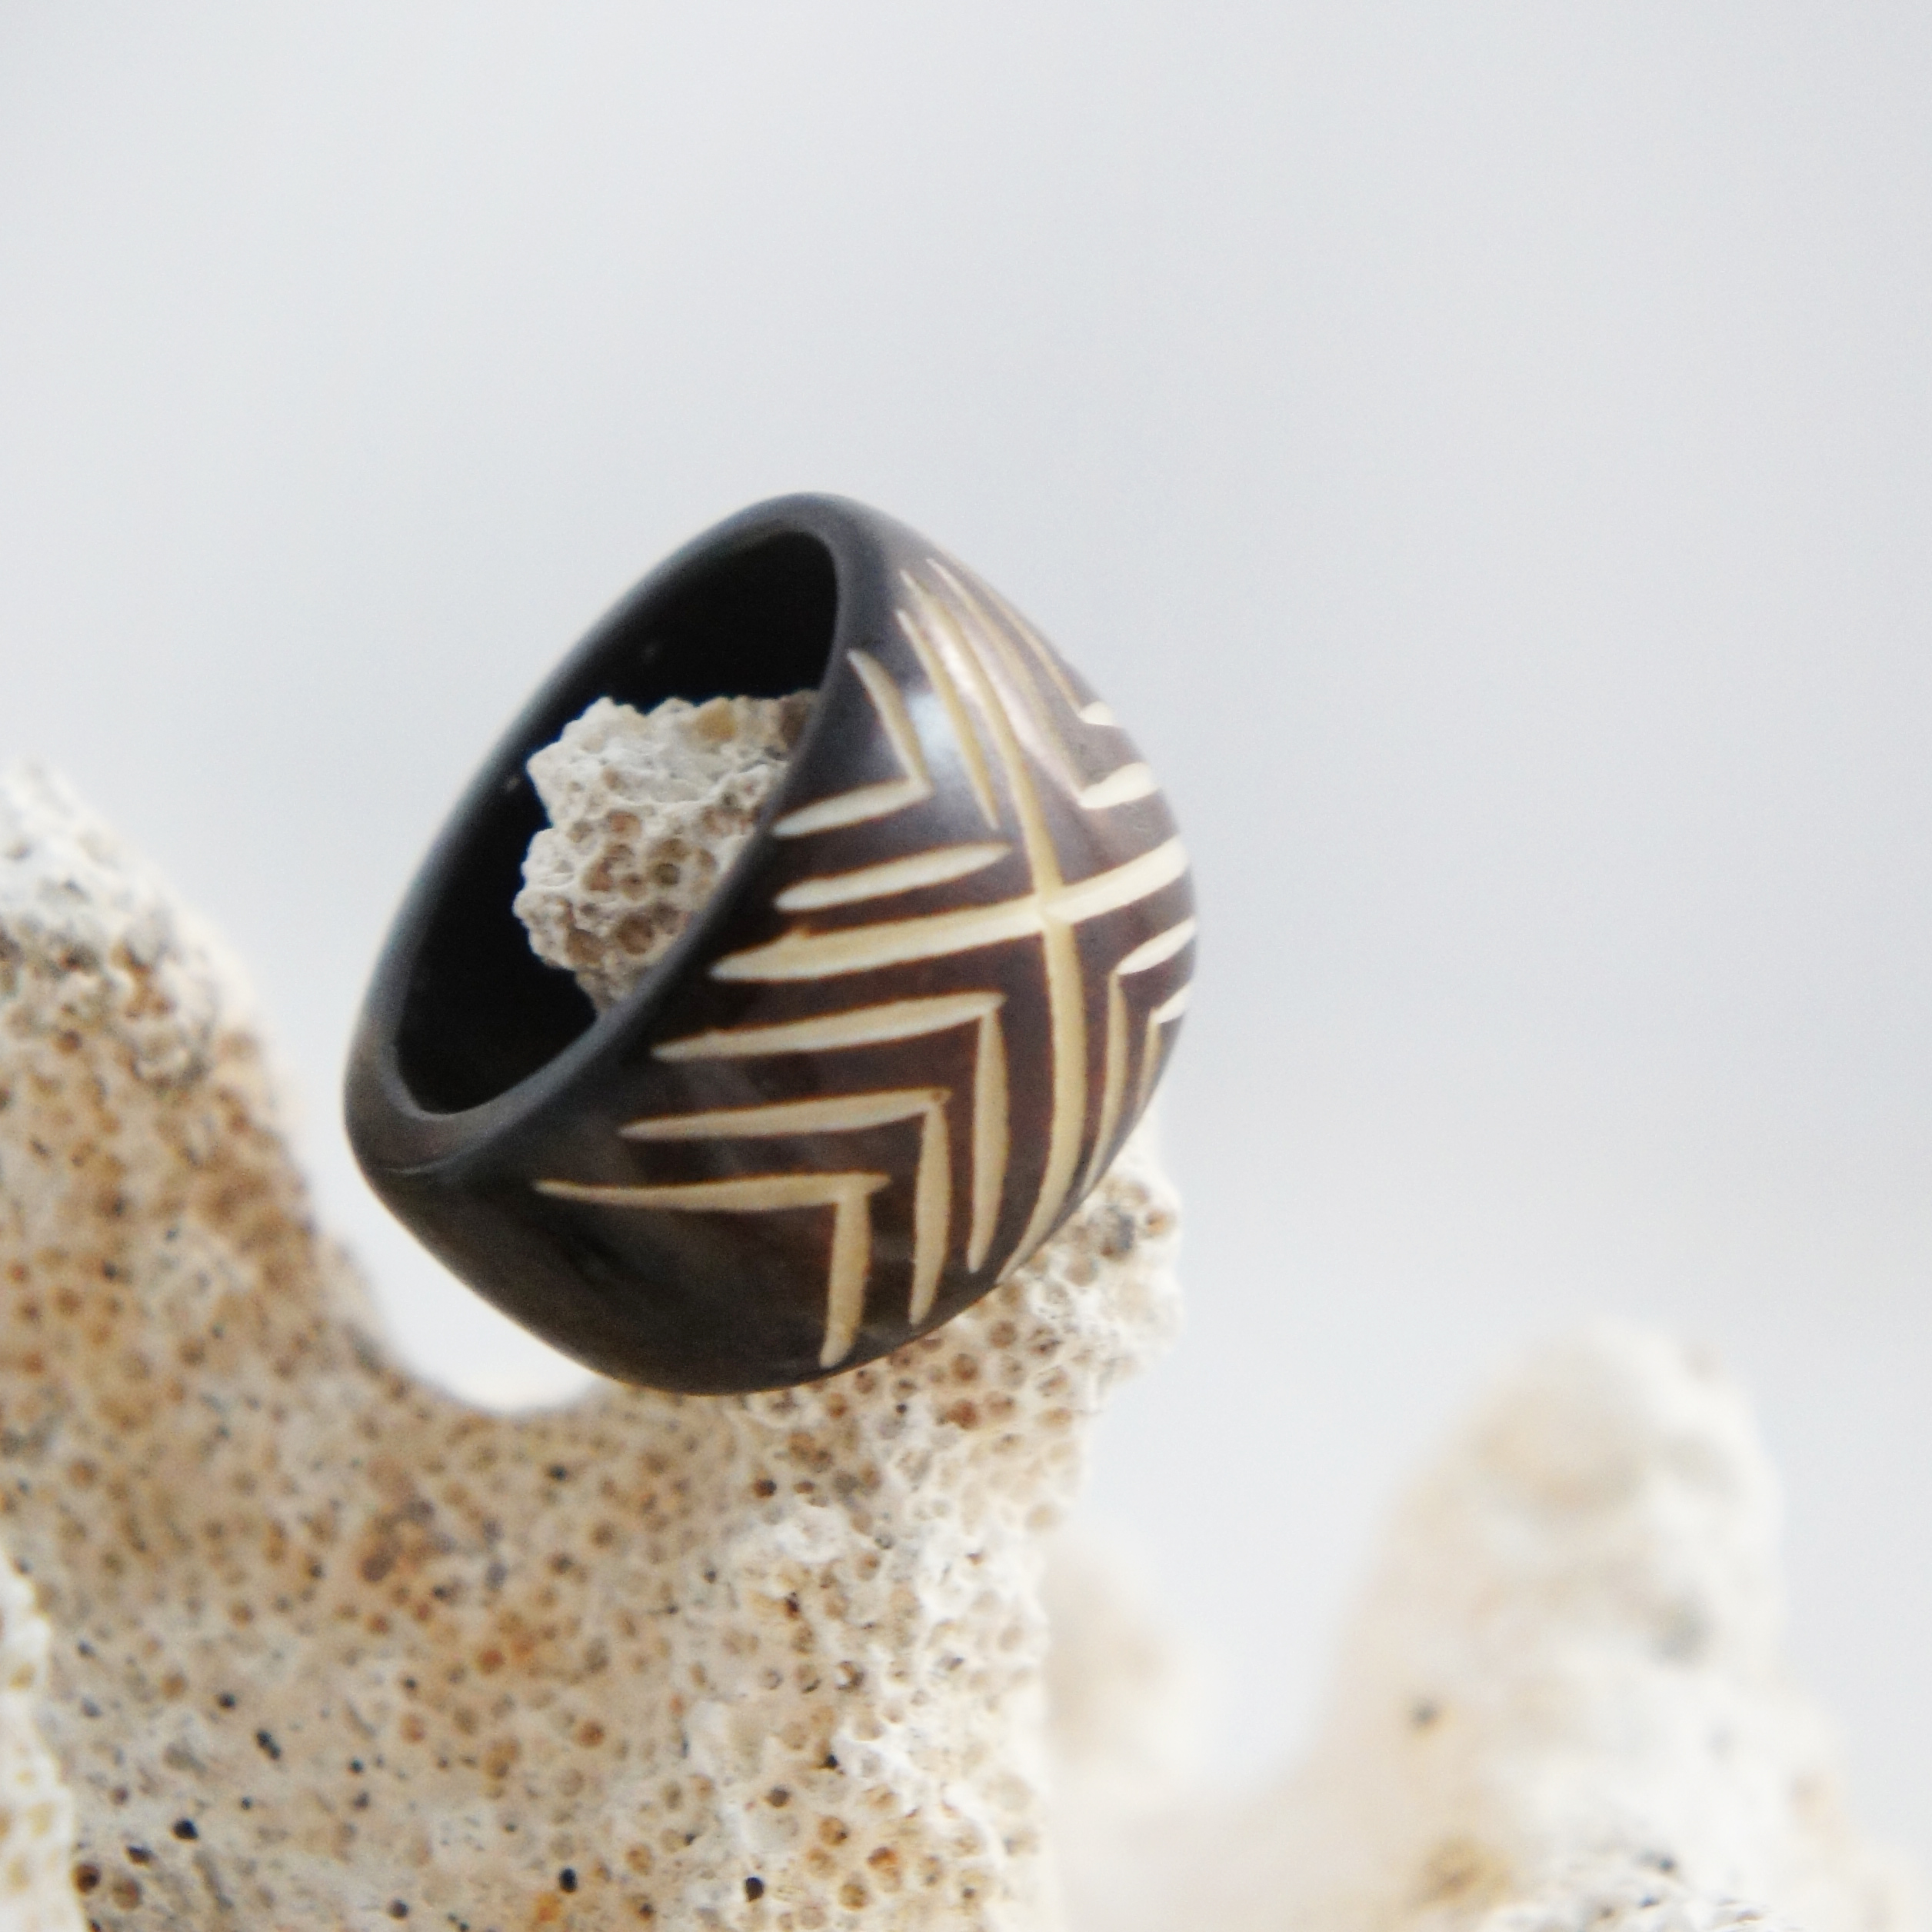 Carved Maori Tribal Triangular Patterned Wood Ring